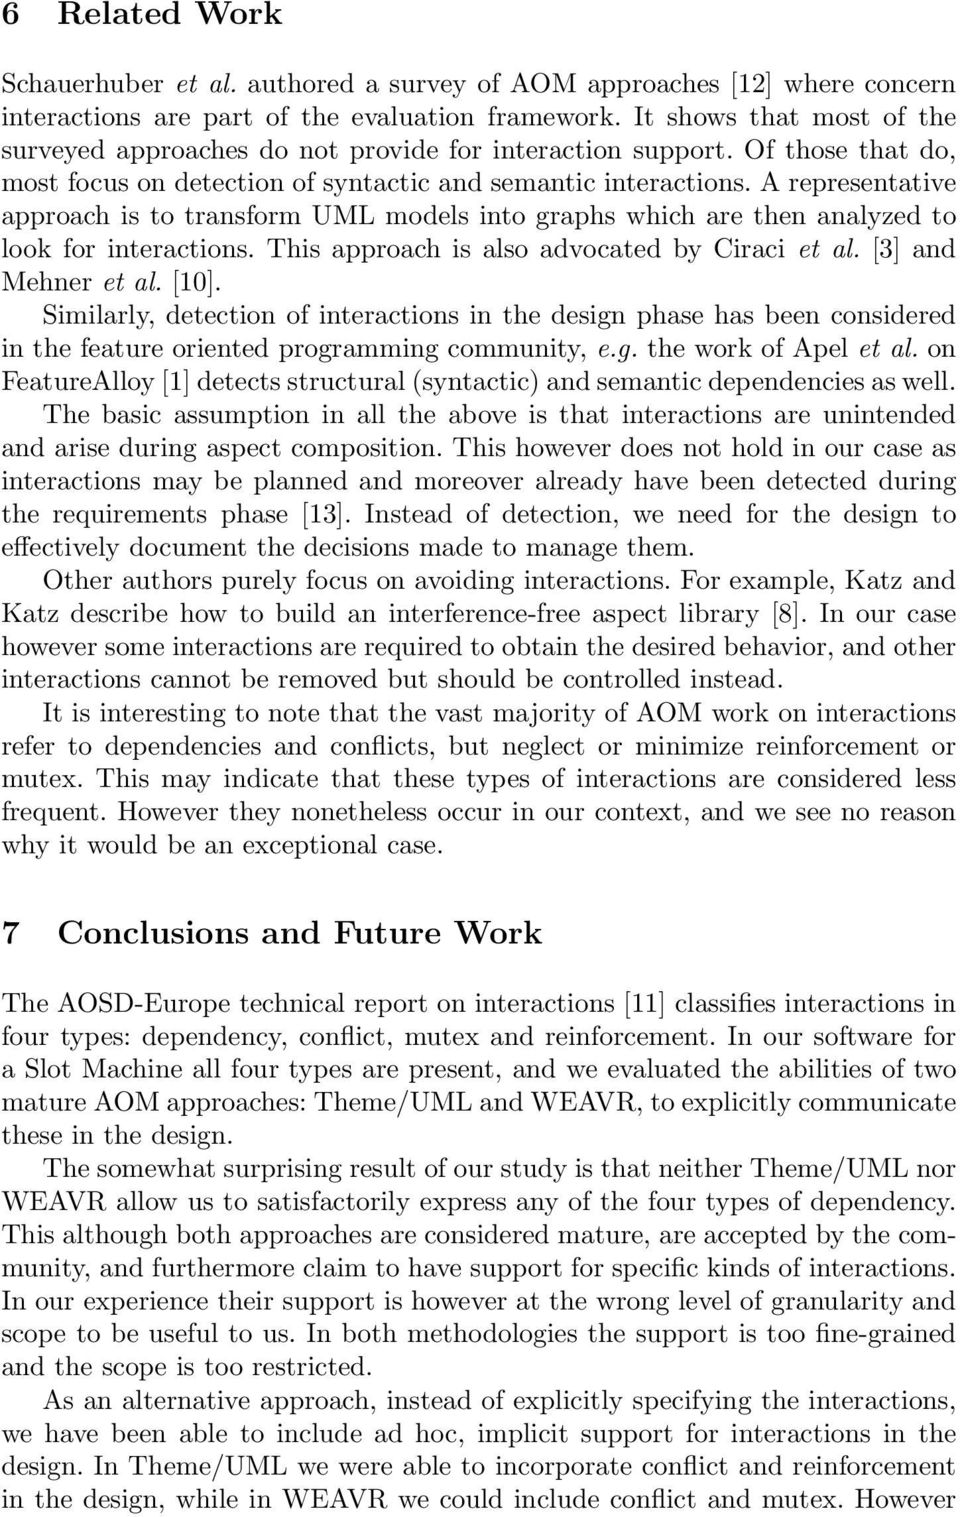 A representative approach is to transform UML models into graphs which are then analyzed to look for interactions. This approach is also advocated by Ciraci et al. [3] and Mehner et al. [10].